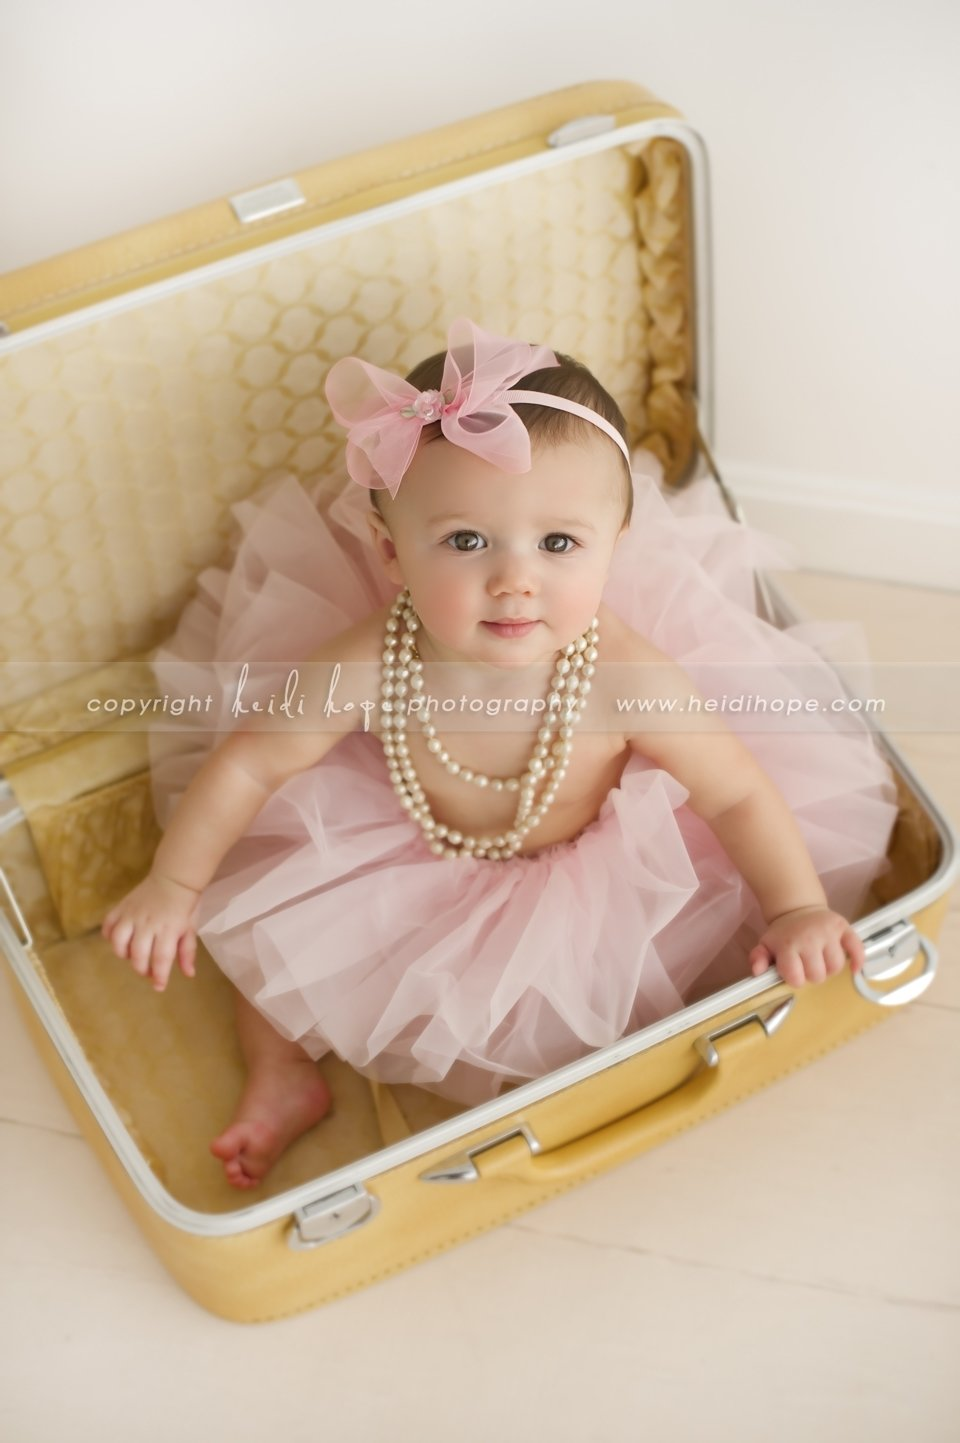 10 Awesome Cute 6 Month Baby Picture Ideas awesome 1 month old baby girl photo ideas selection photo and 2